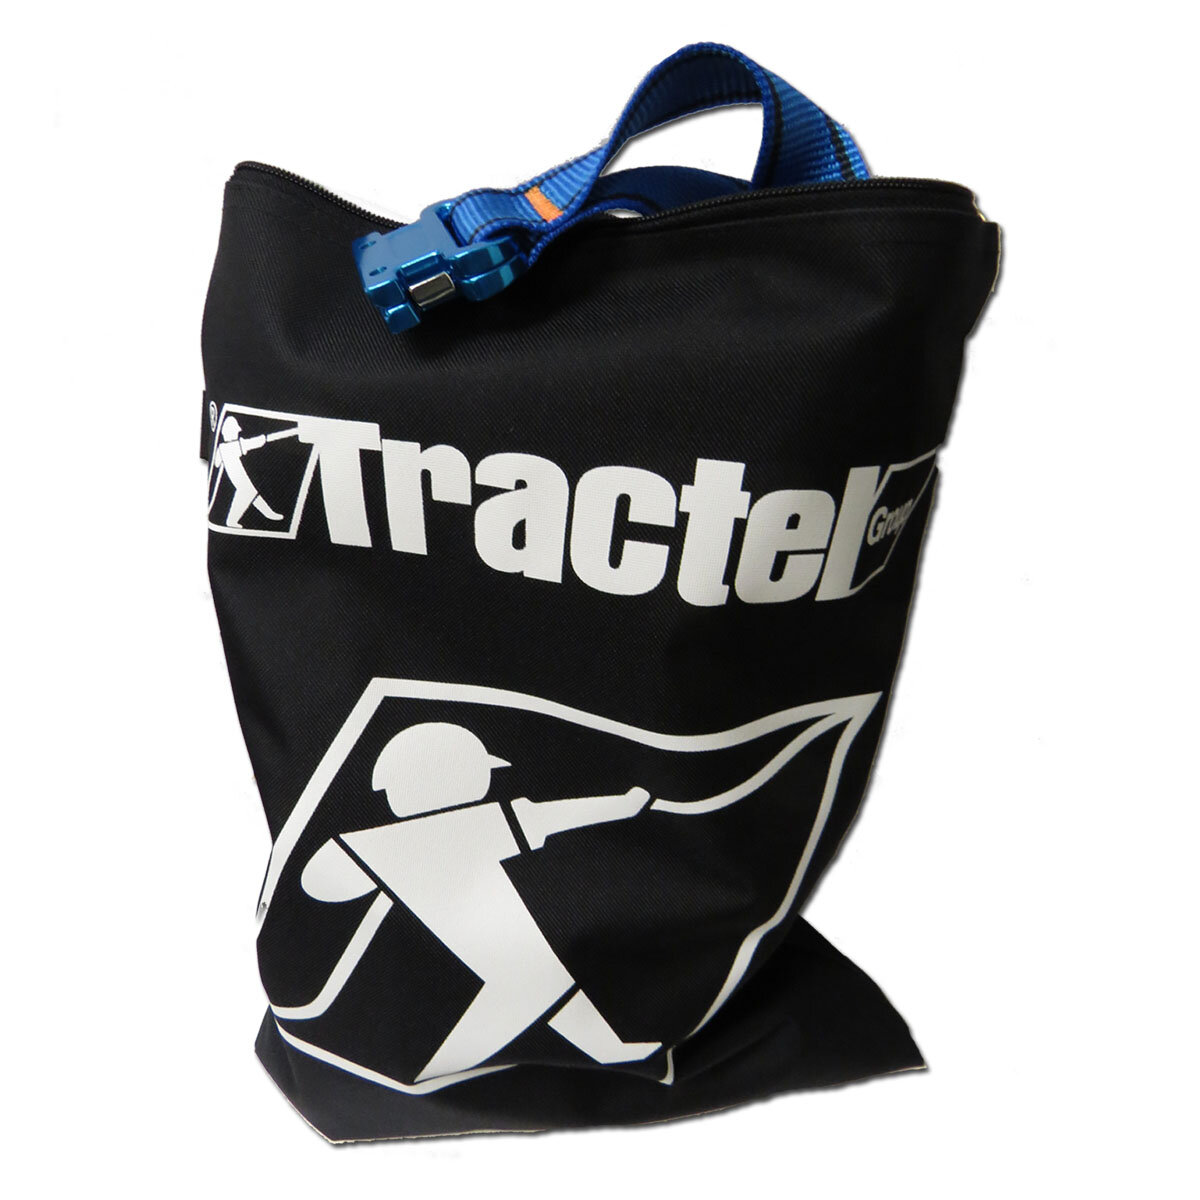 Tractel Pocket Bag - Zip fastening